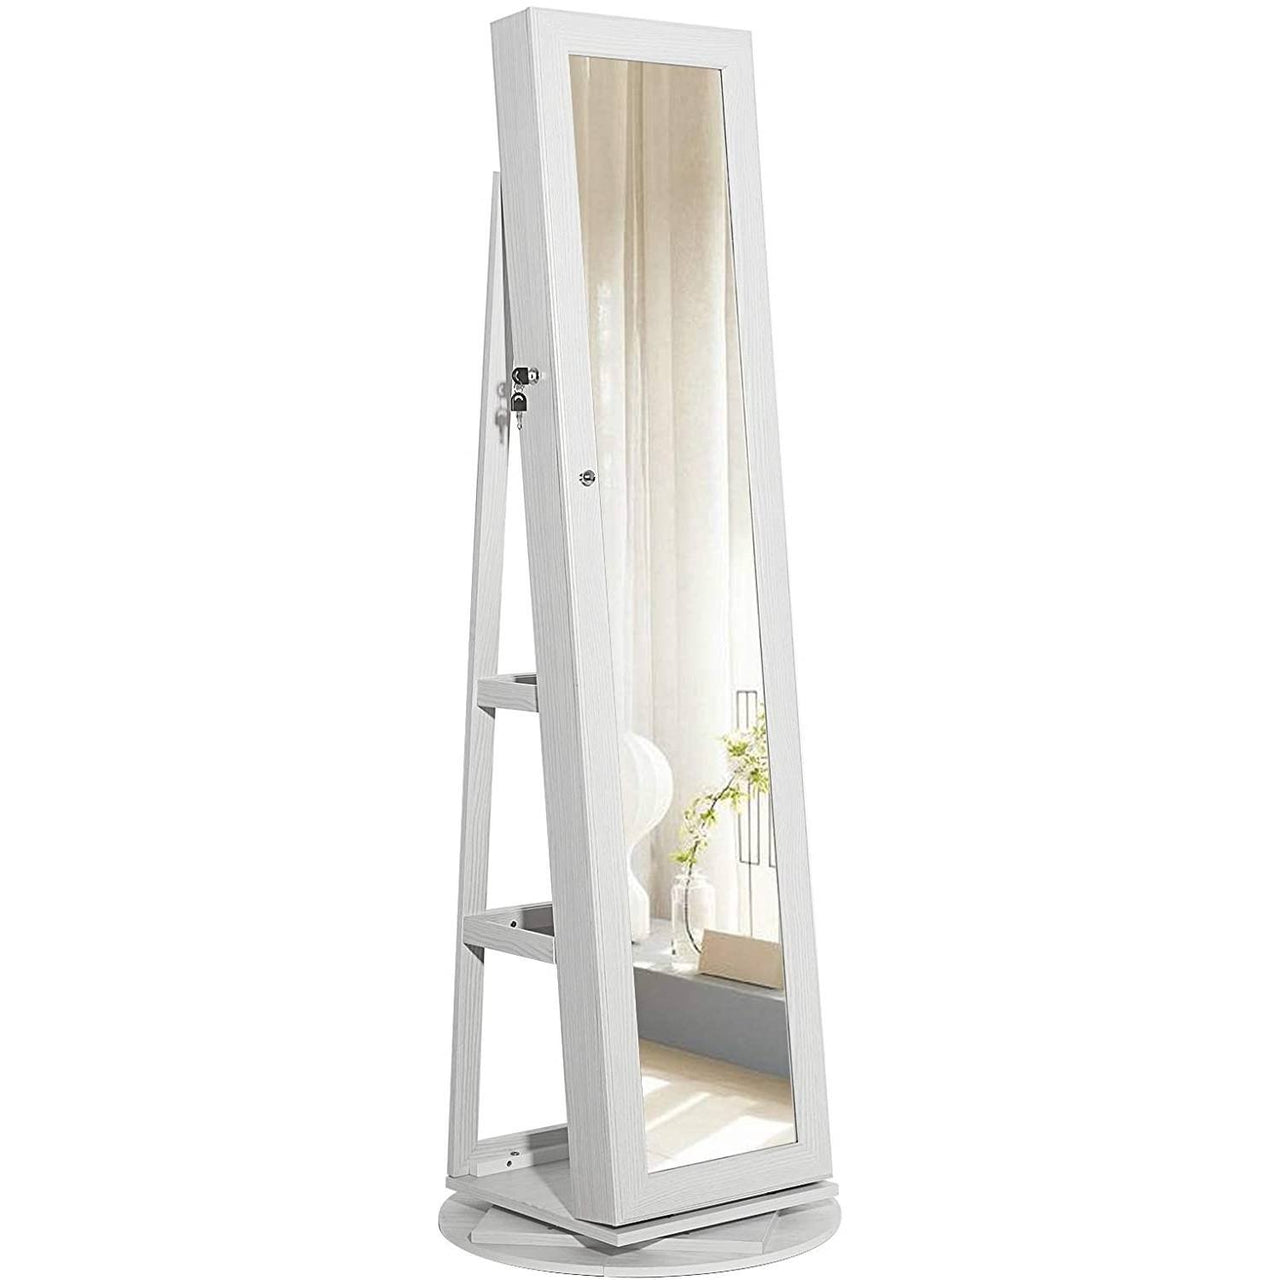 360 Degree Swivel White Wash Full Length Mirror Locking Jewelry Armoire